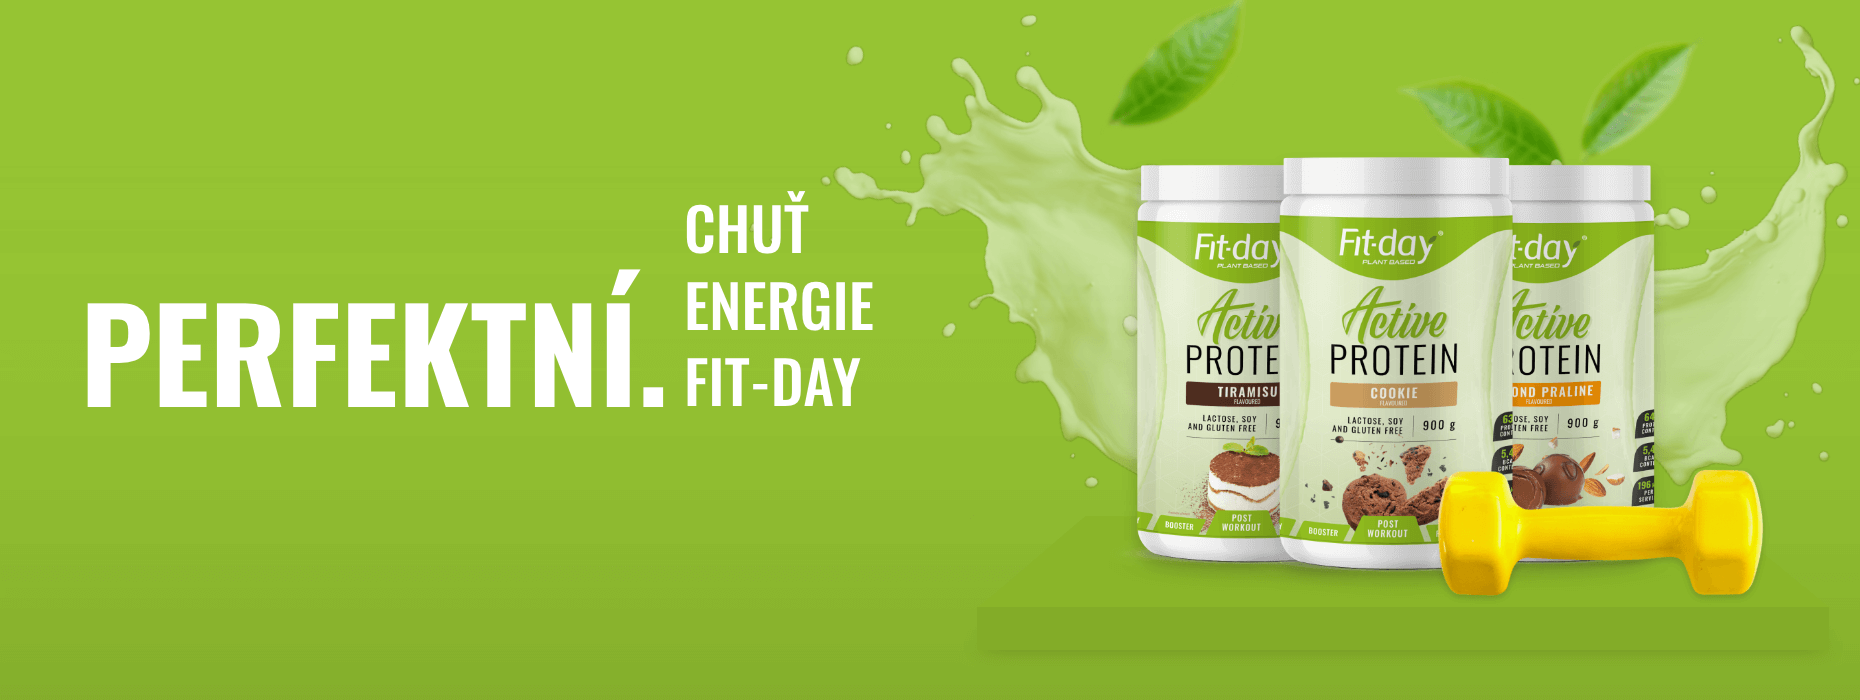 Fit-day protein active